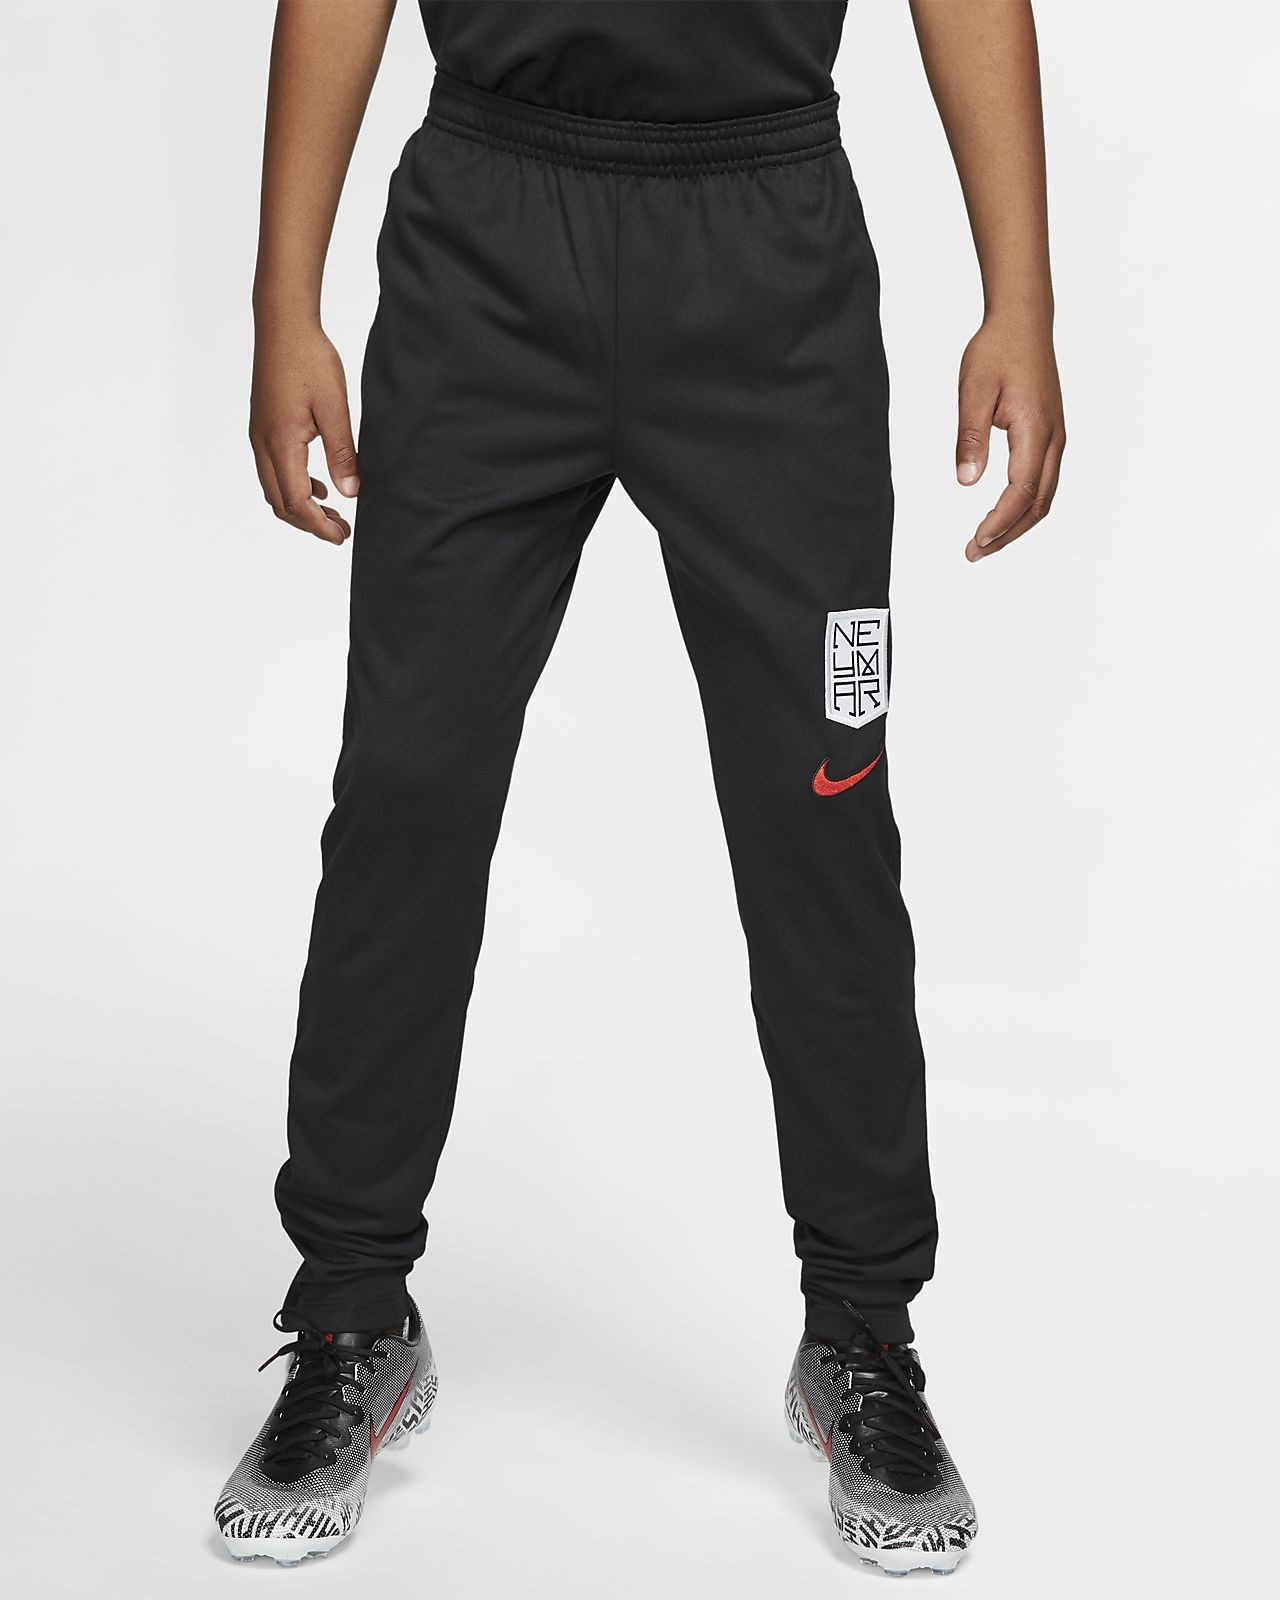 Nike Dri-FIT Neymar Jr. 大童足球運動褲